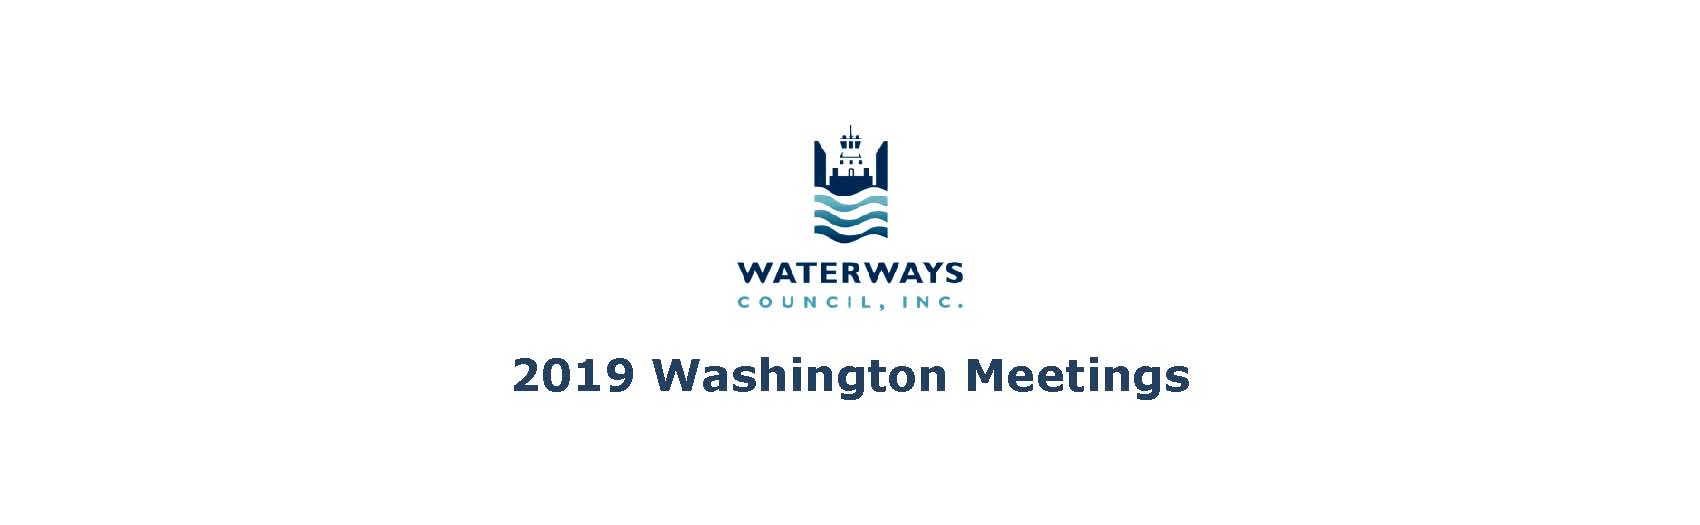 2019 Washington Meetings